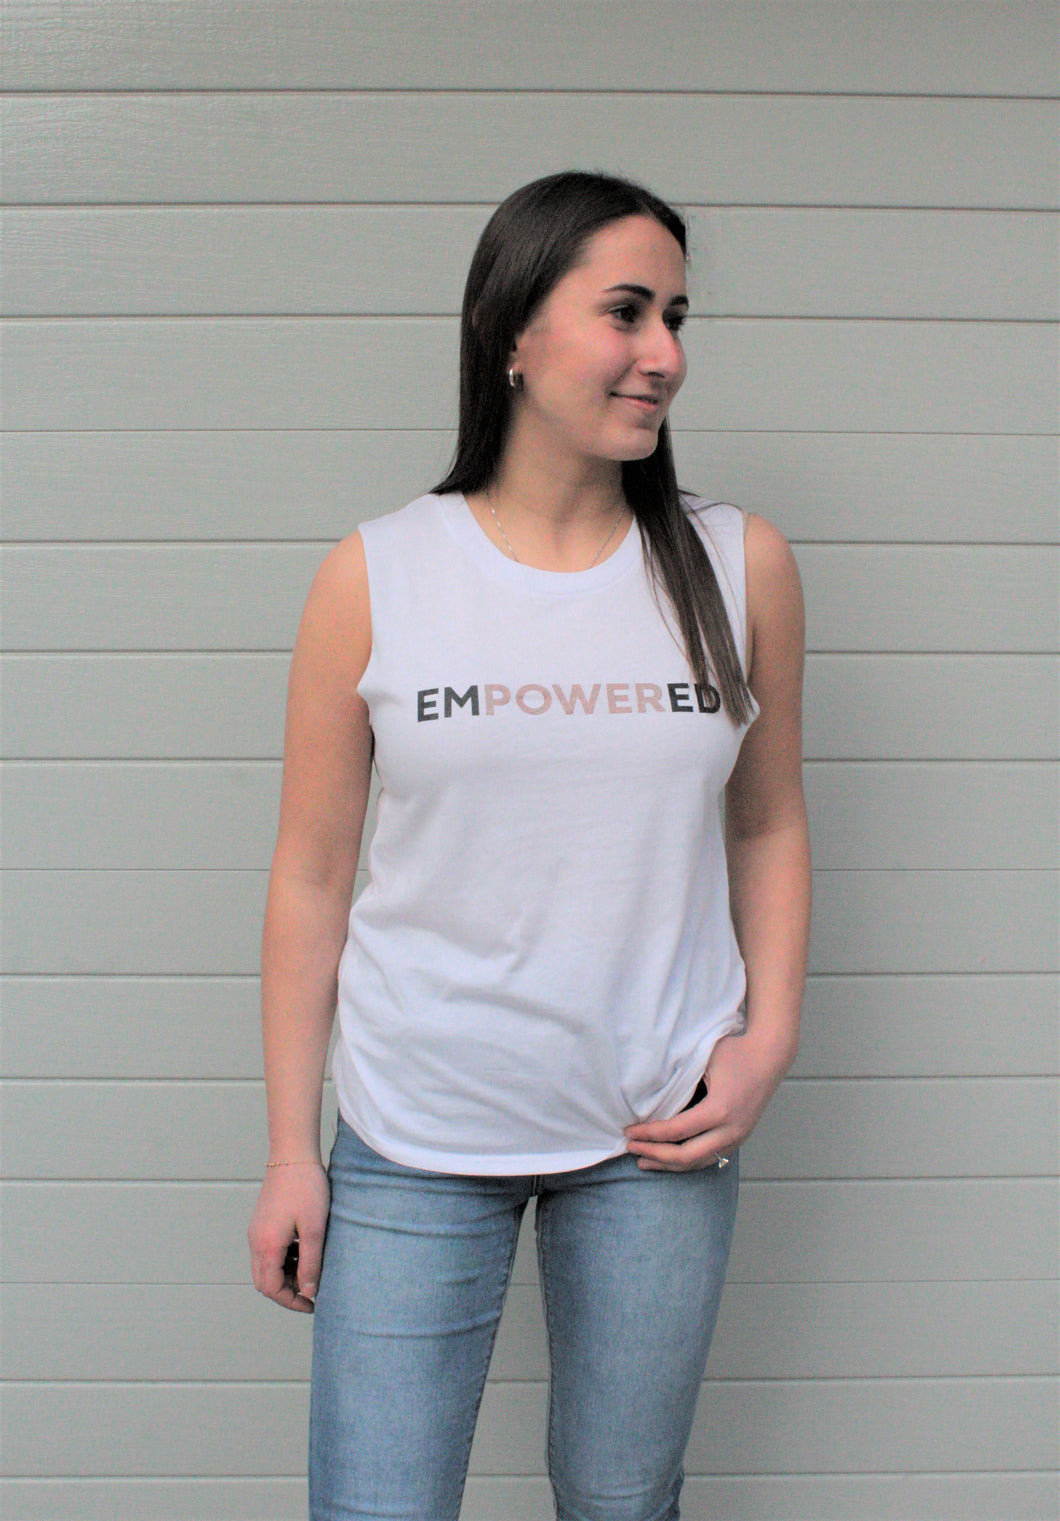 'EMPOWERED' White Tank Top